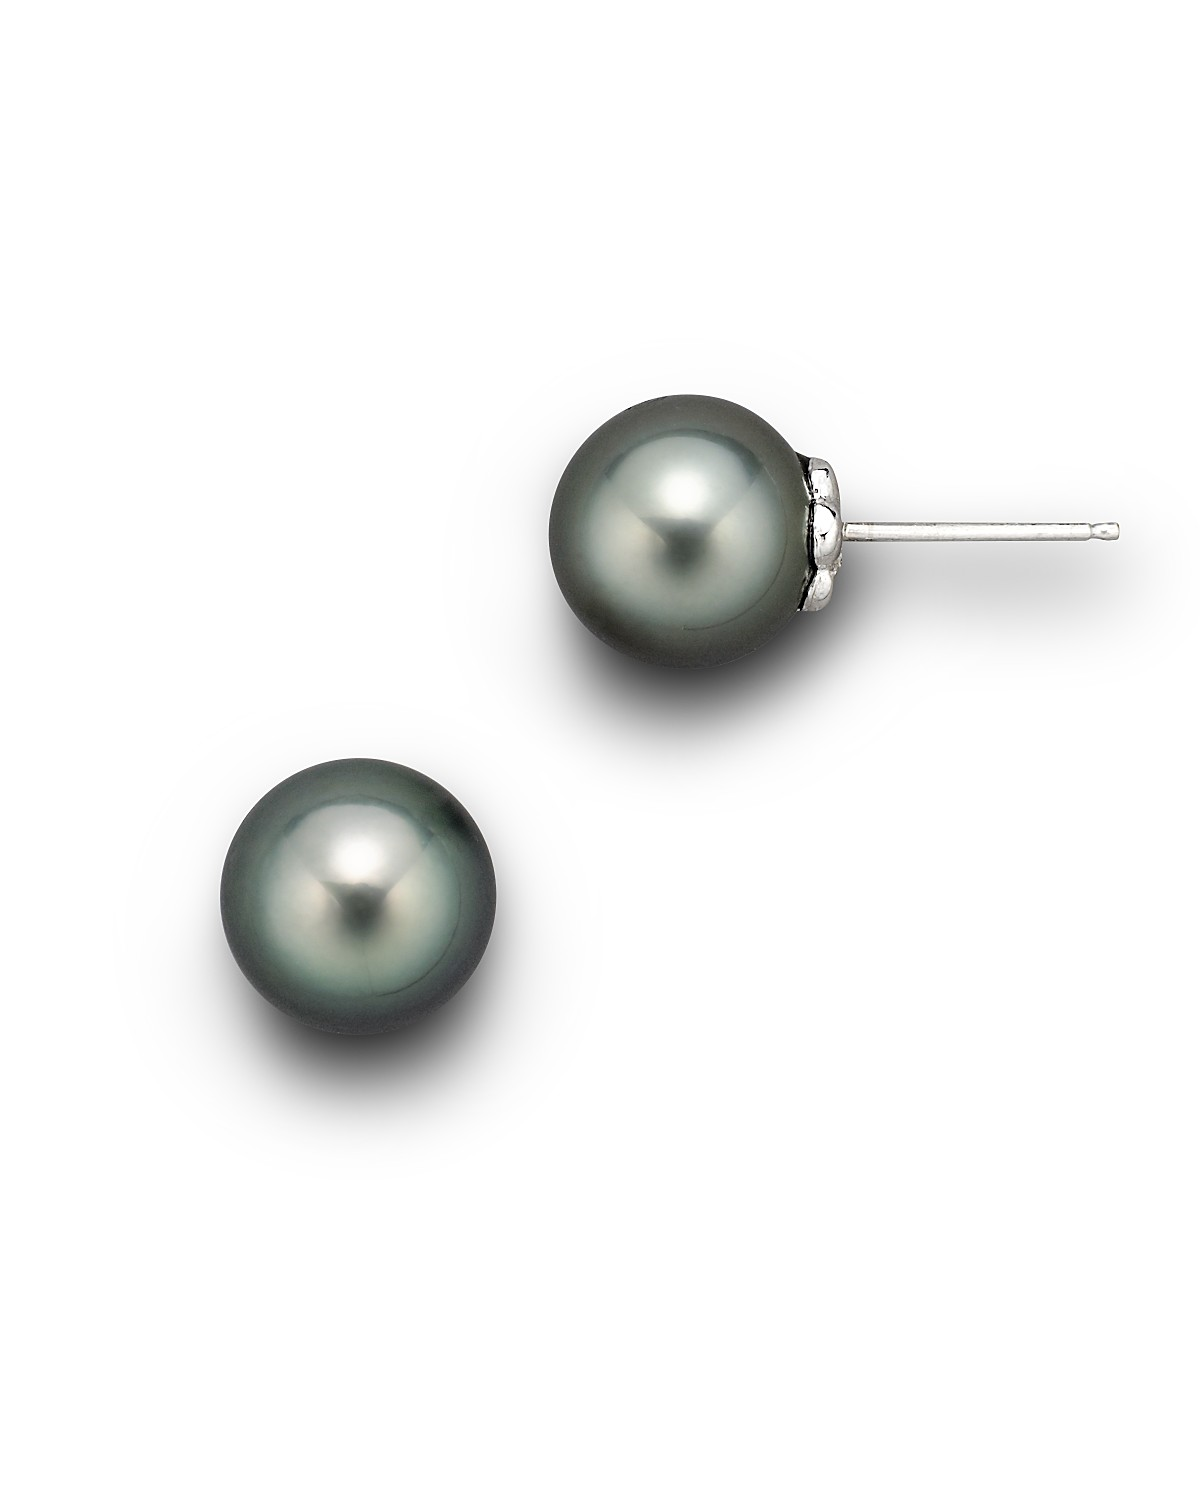 girls pearls sizes stud earrings white pearl size chart our studs the of southern extra